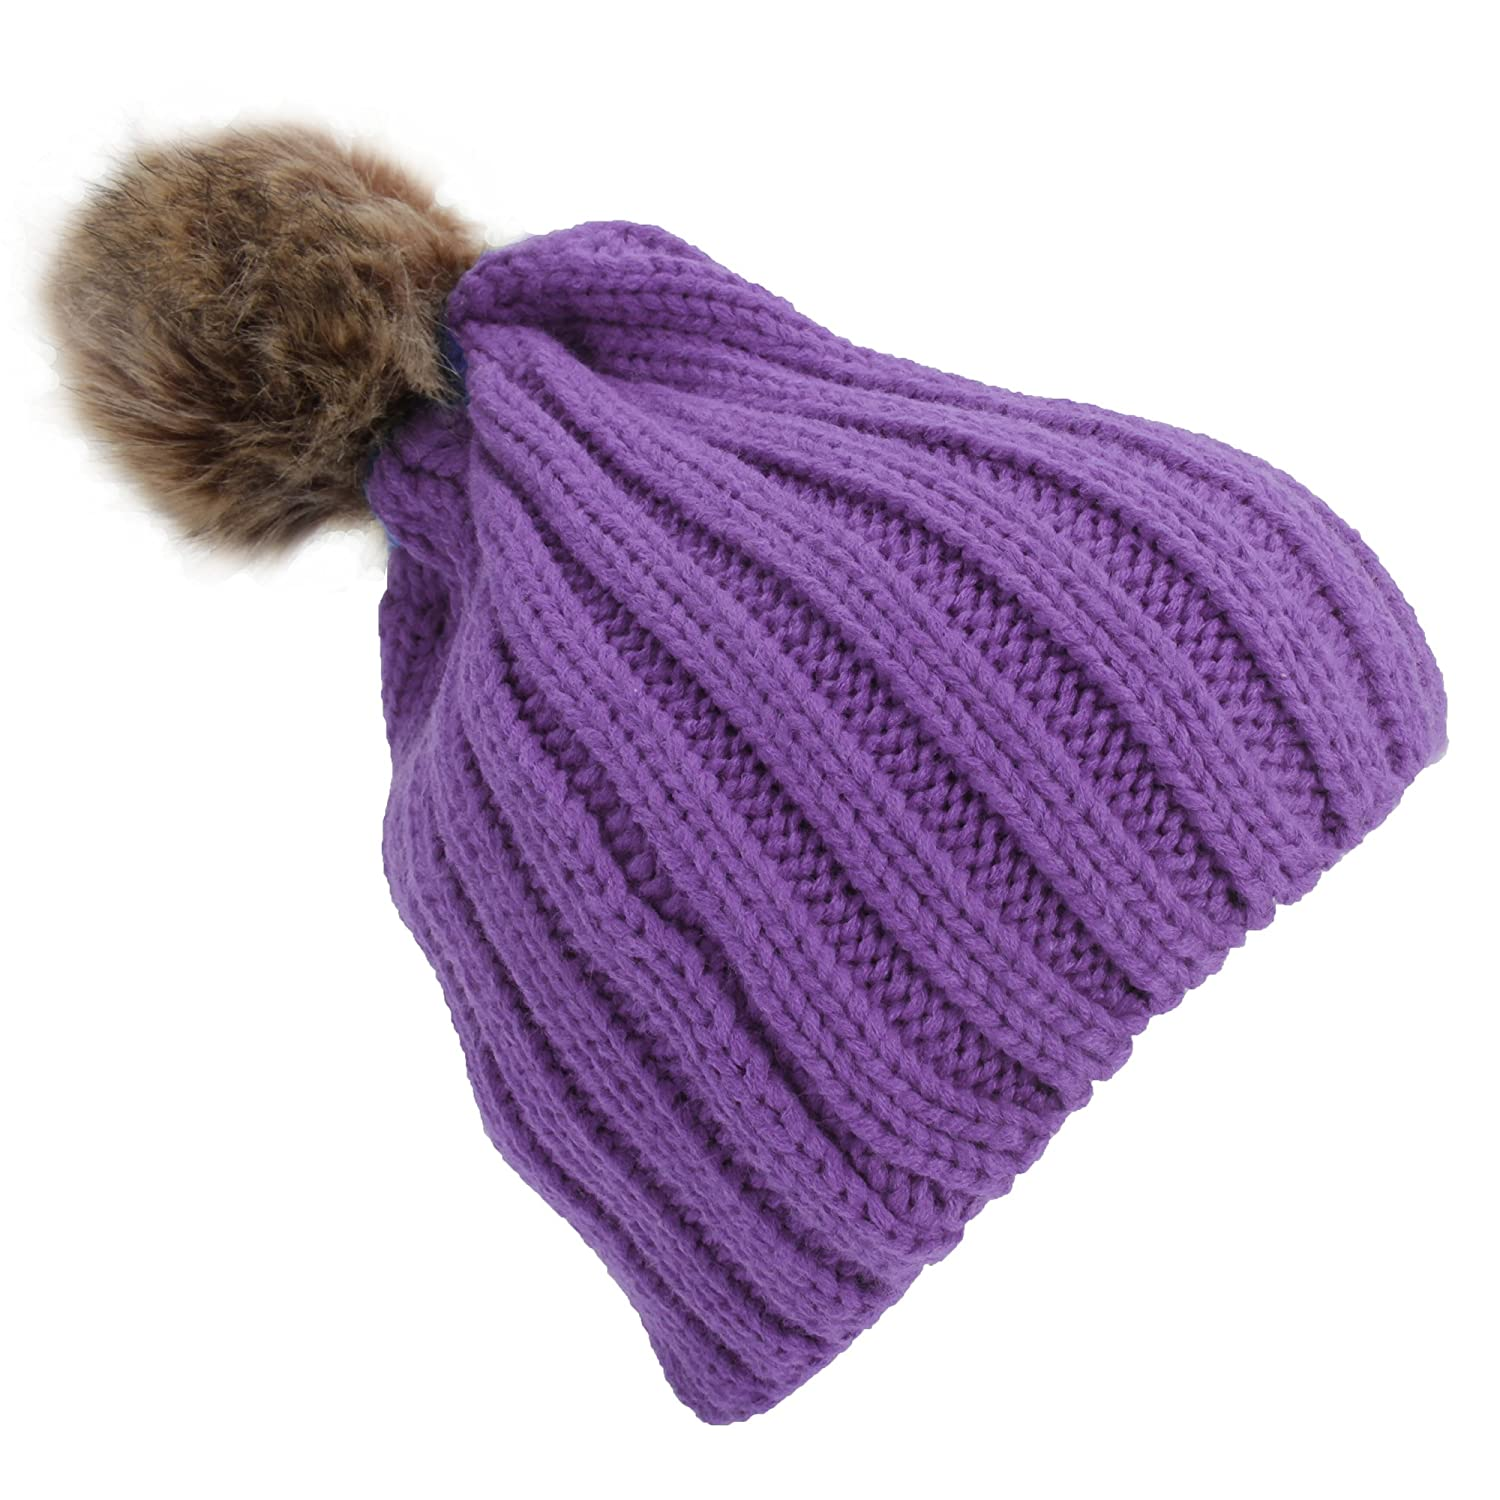 Childrens Girls Cable Knit Faux Fur Pom Pom Winter Beanie Hat (One Size) (Purple) Universal Textiles UTHA513_4